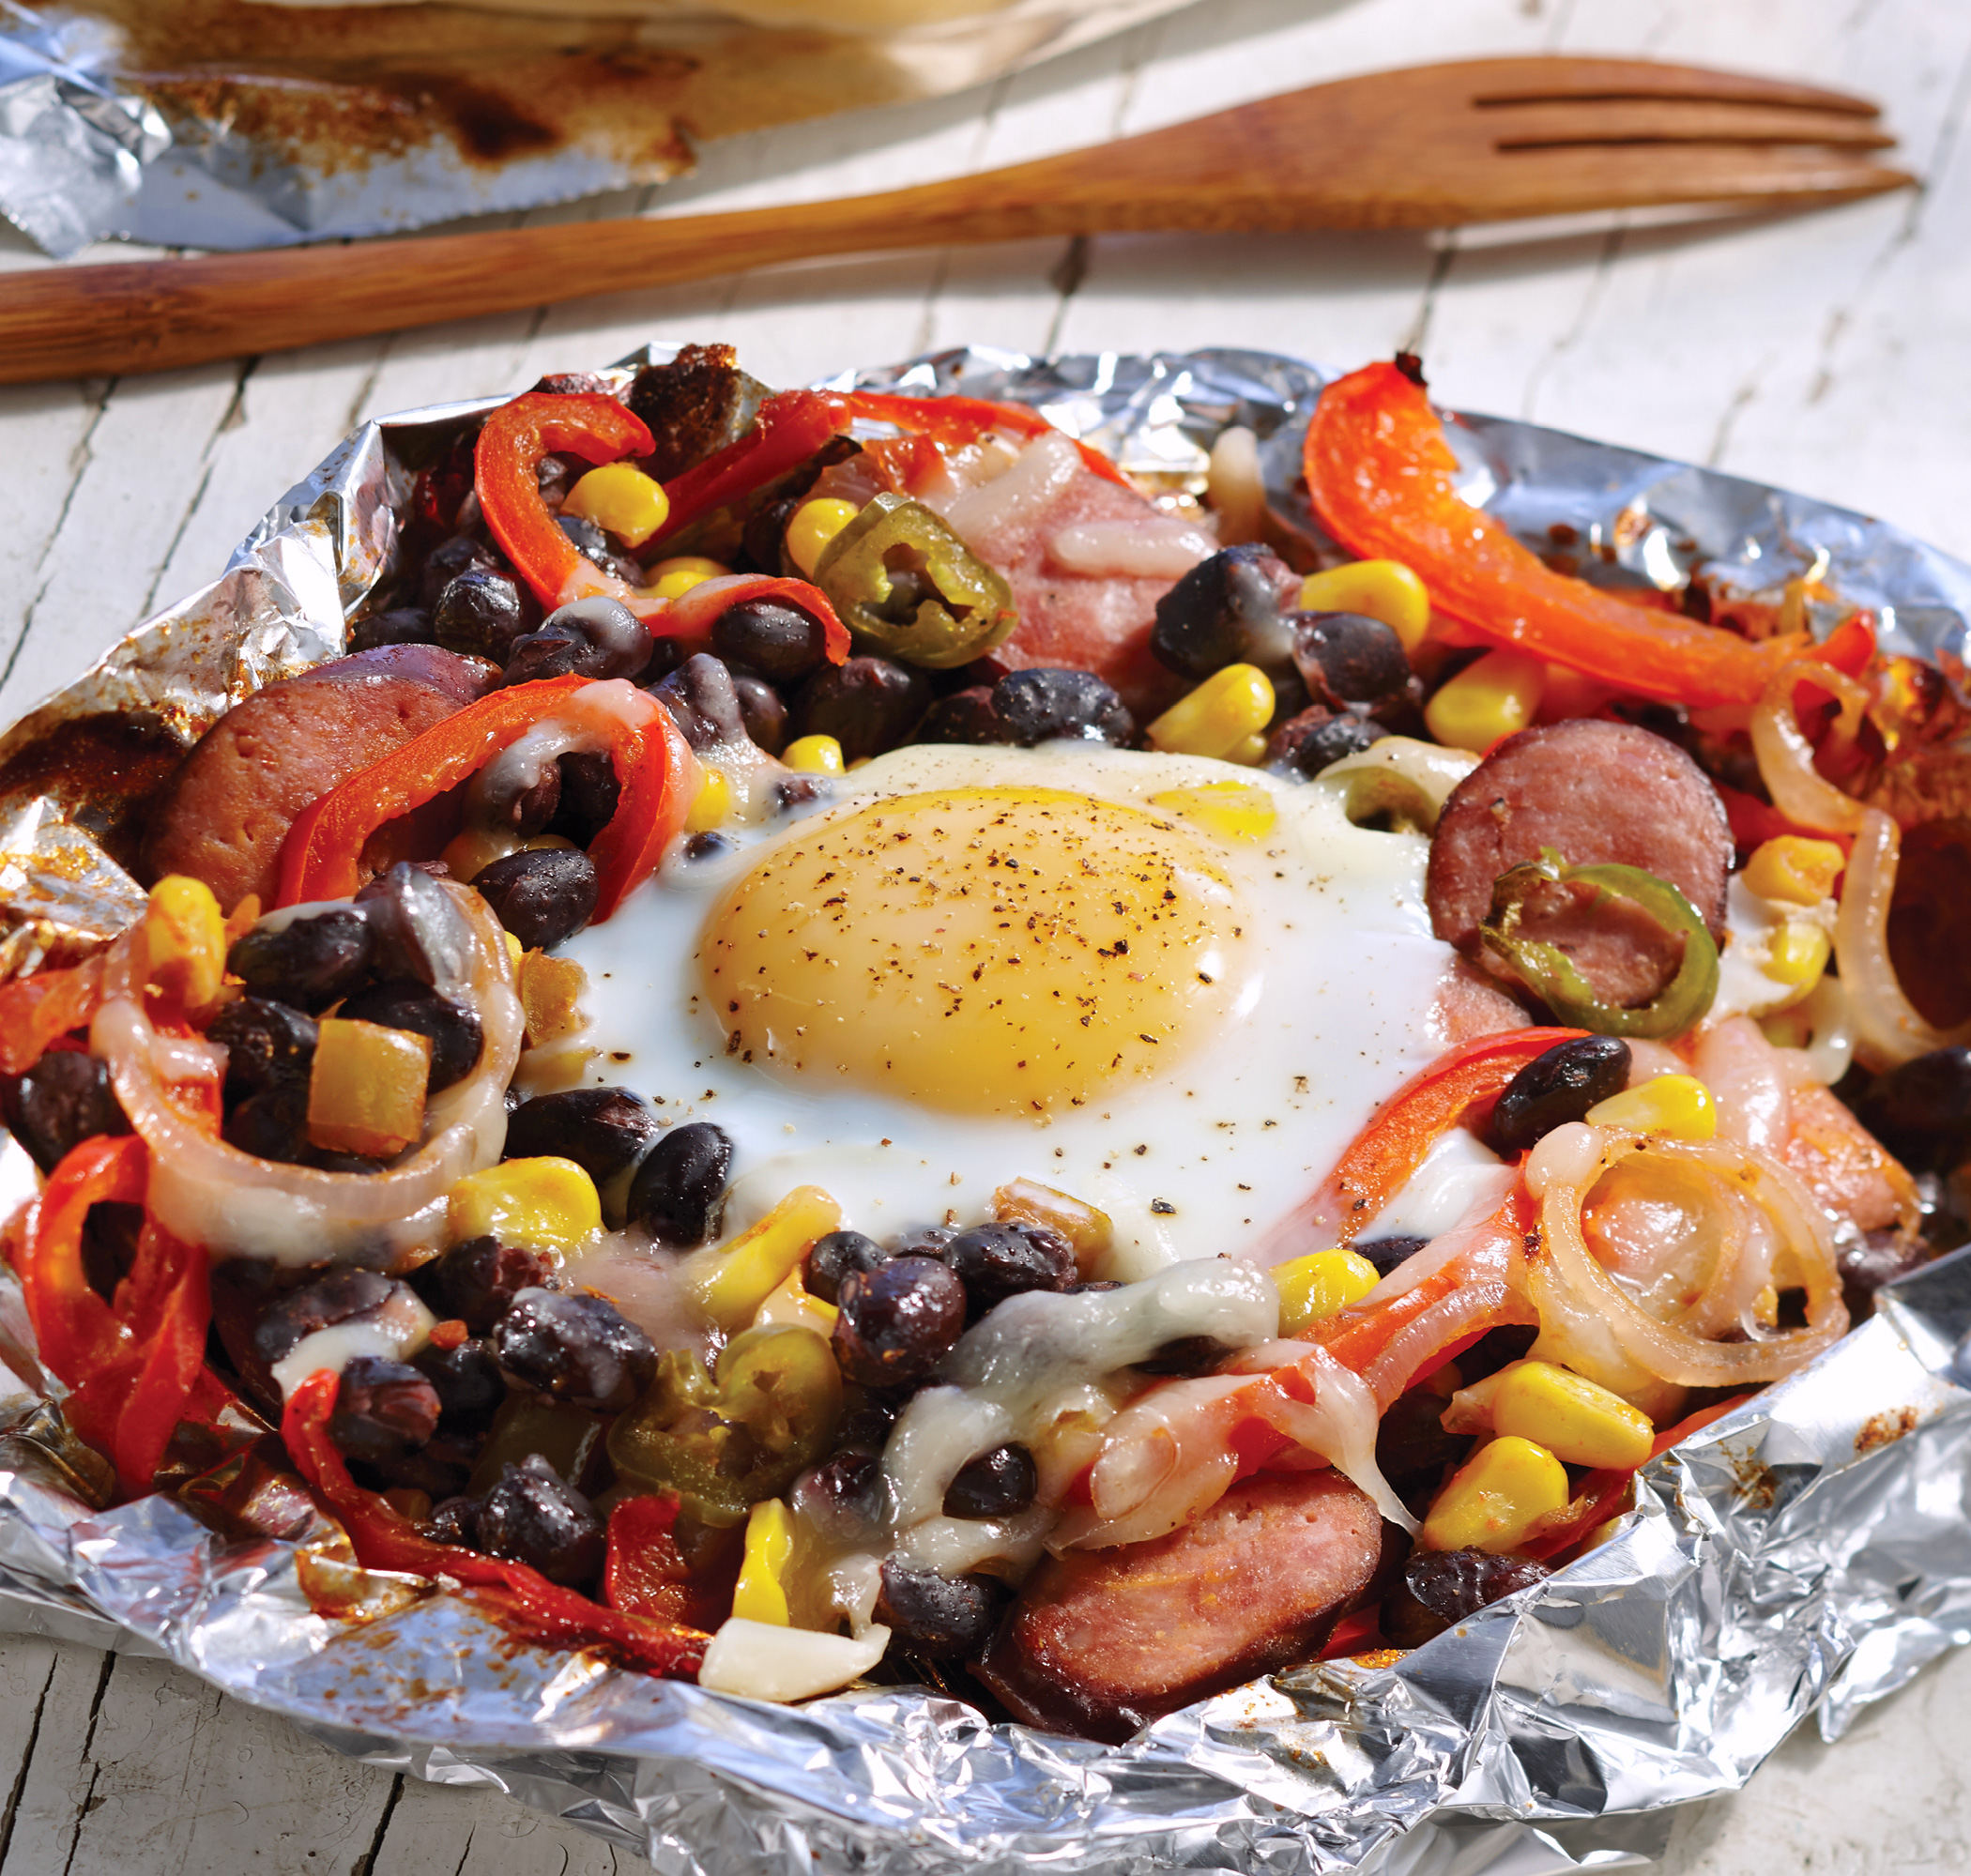 Make these yummy breakfast tacos in advance to take on your camping trip or enjoy at home.